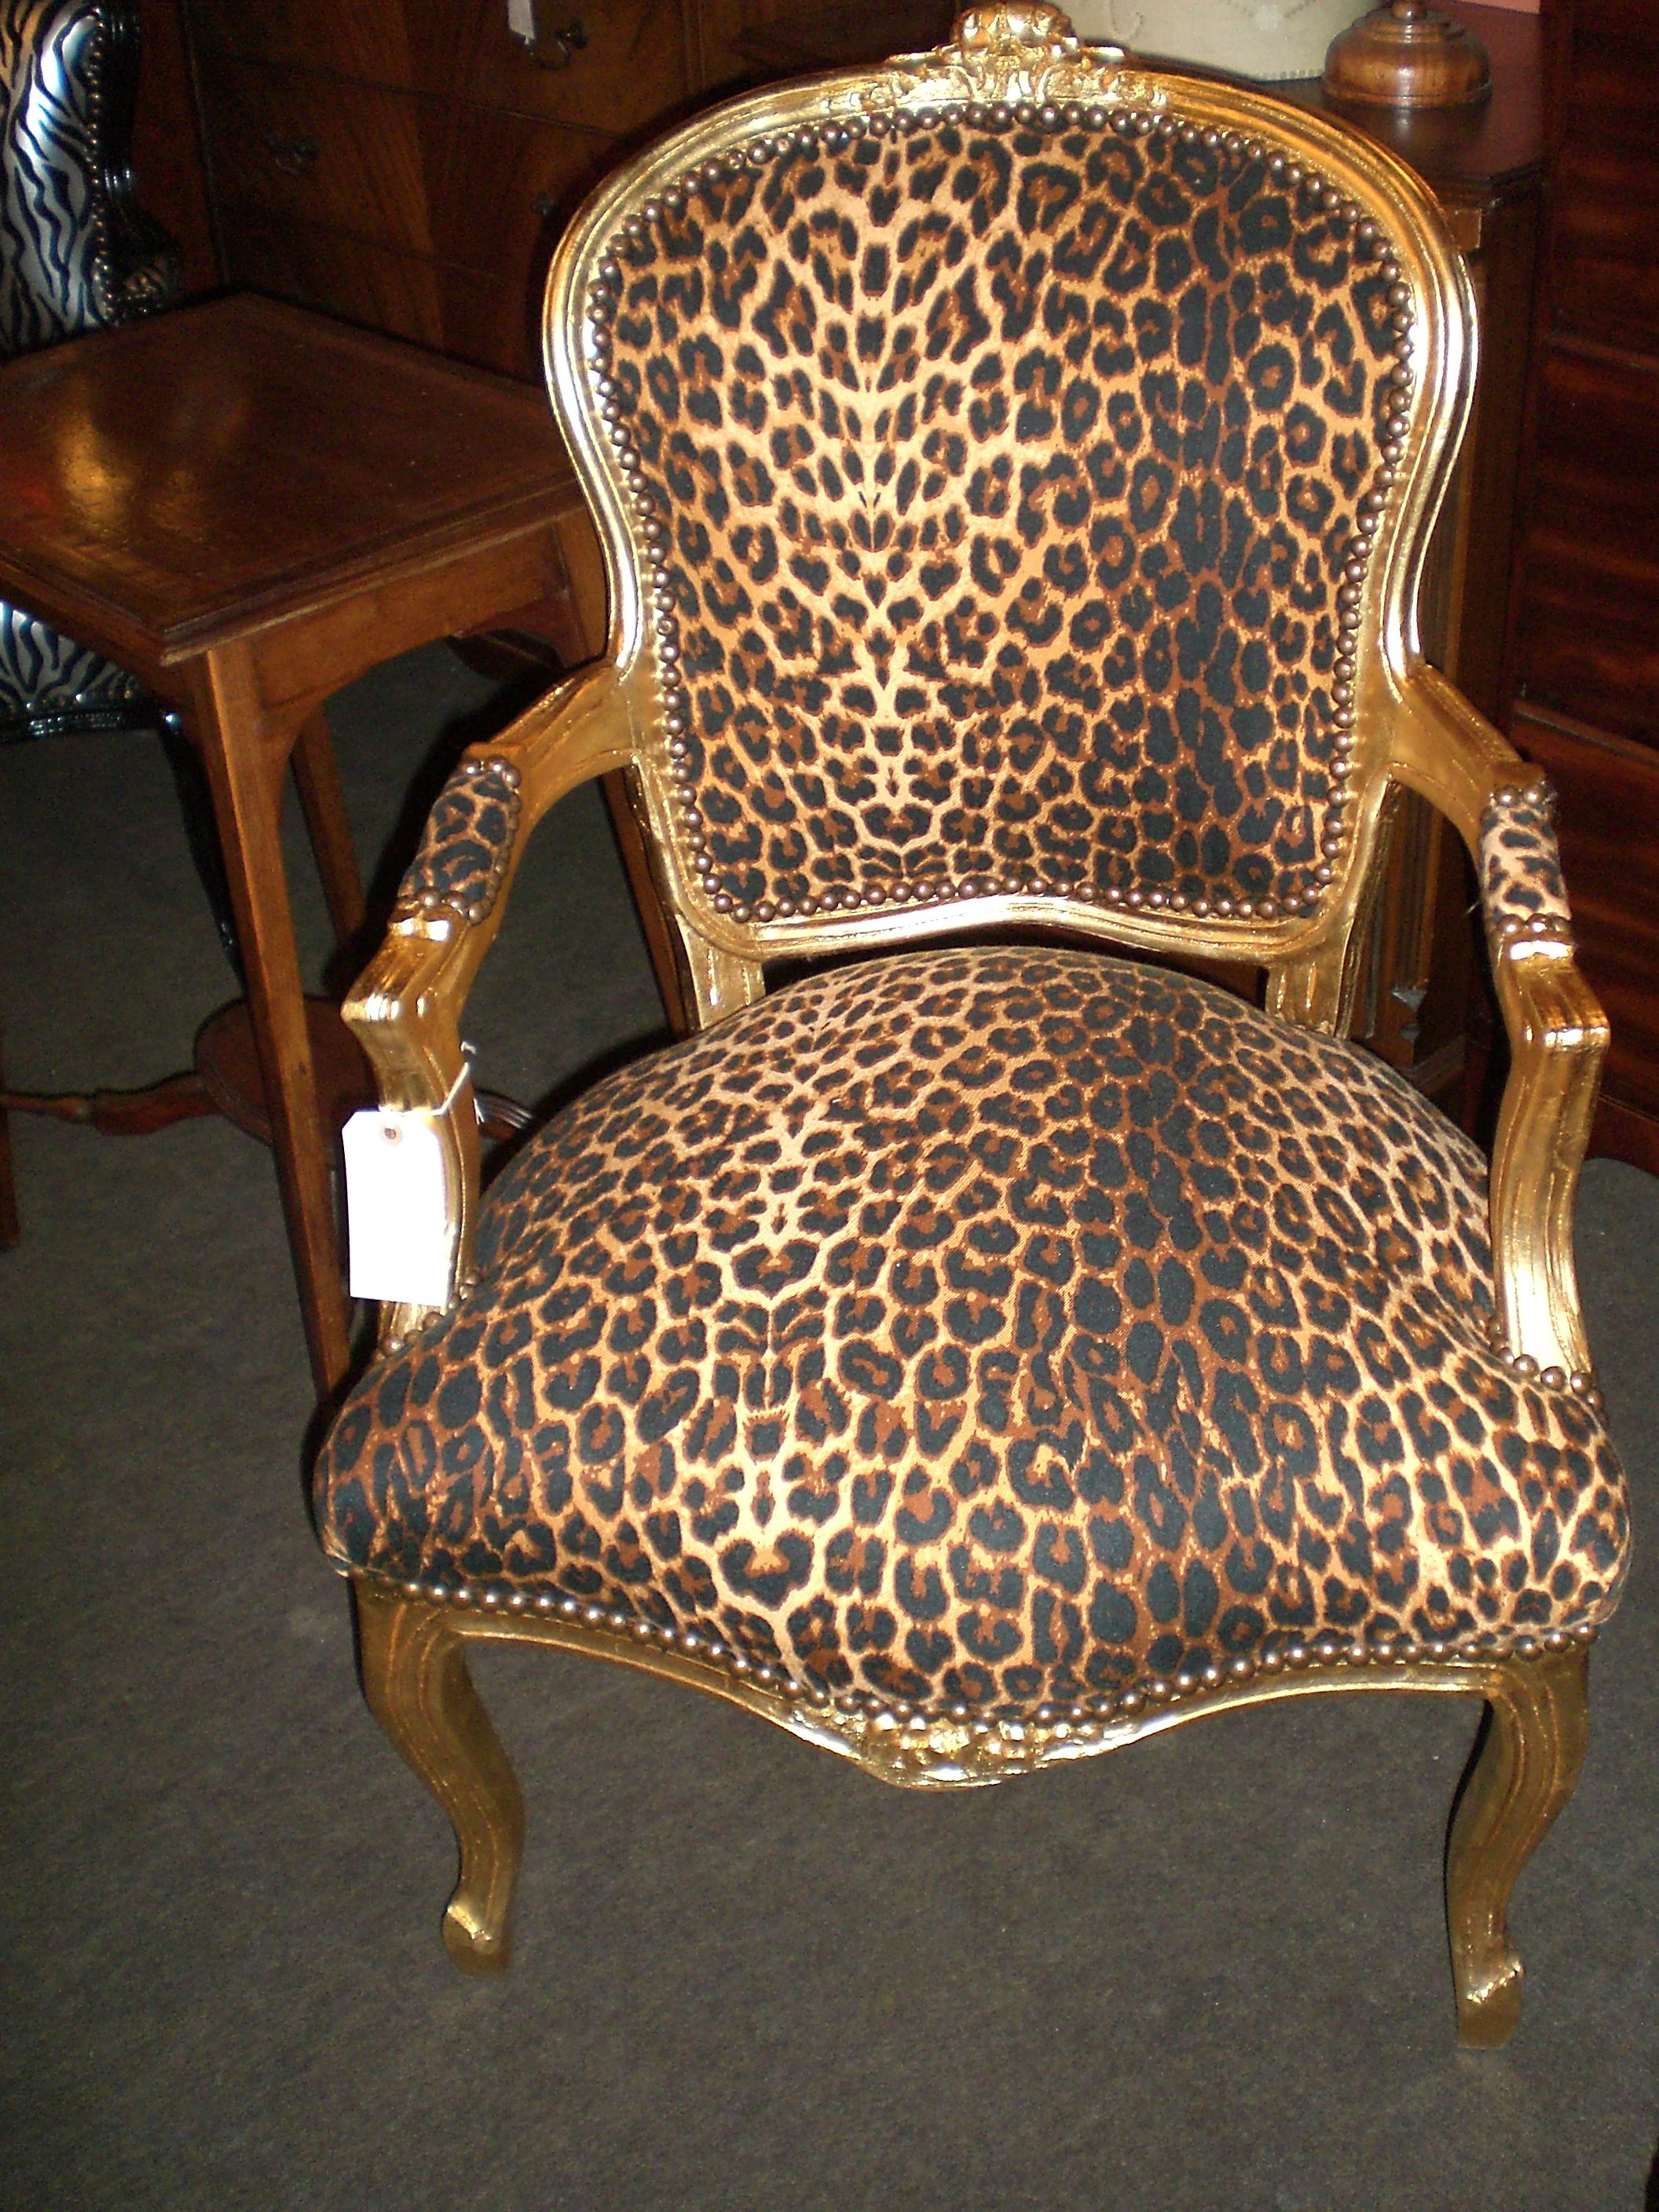 Bon Glamorous Animal Print Accent Chairs Collection : Fascinating Leopard Print  Fabric Chair Design Inspiration With Gold Painted Wooden Frame F.